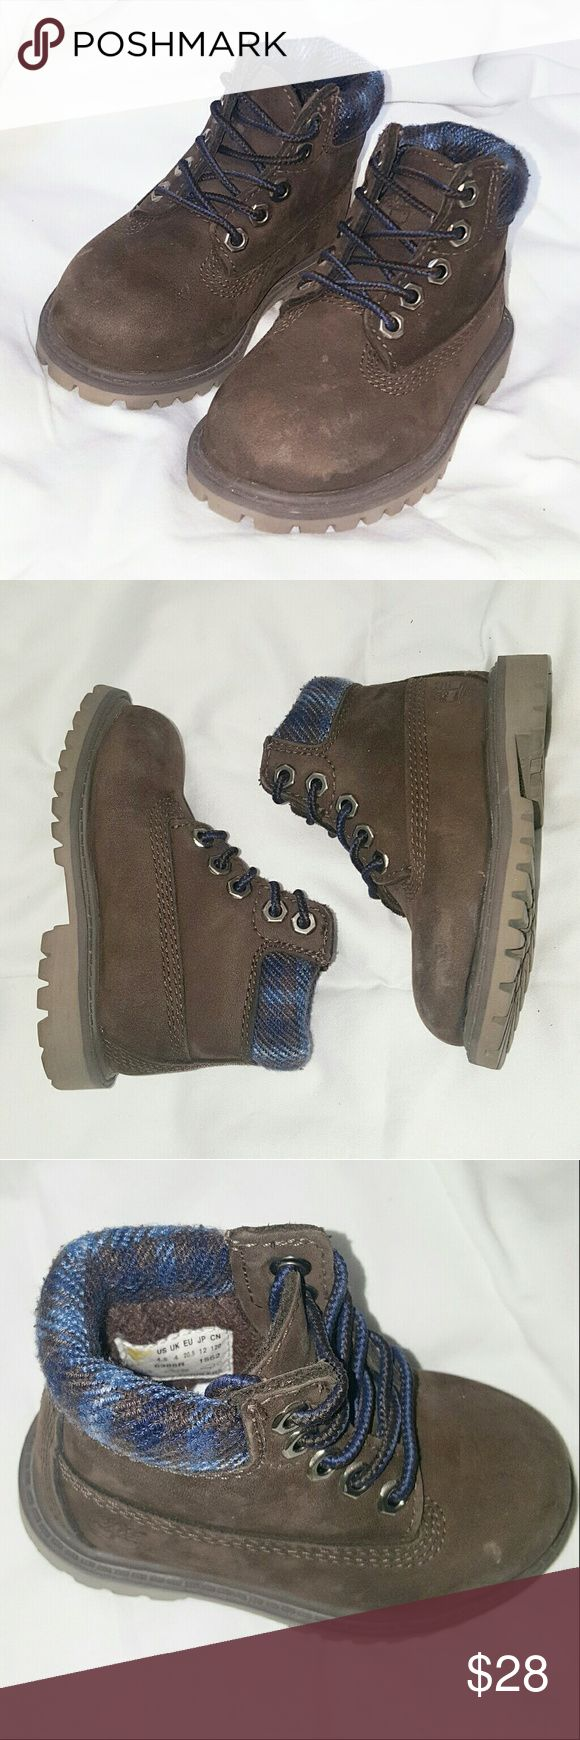 TIMBERLAND 4.5 us baby boots hiking cute classic CUTE TIMBERLAND HIKING BOOTS NO MAJOR FLAWS SOME SCUFFS THAT ARE EASILY CLEANED GOOD ENOUGH TO WEAR AS IS LOVELY BROWN WIT BLUE PLAID Timberland Shoes Boots